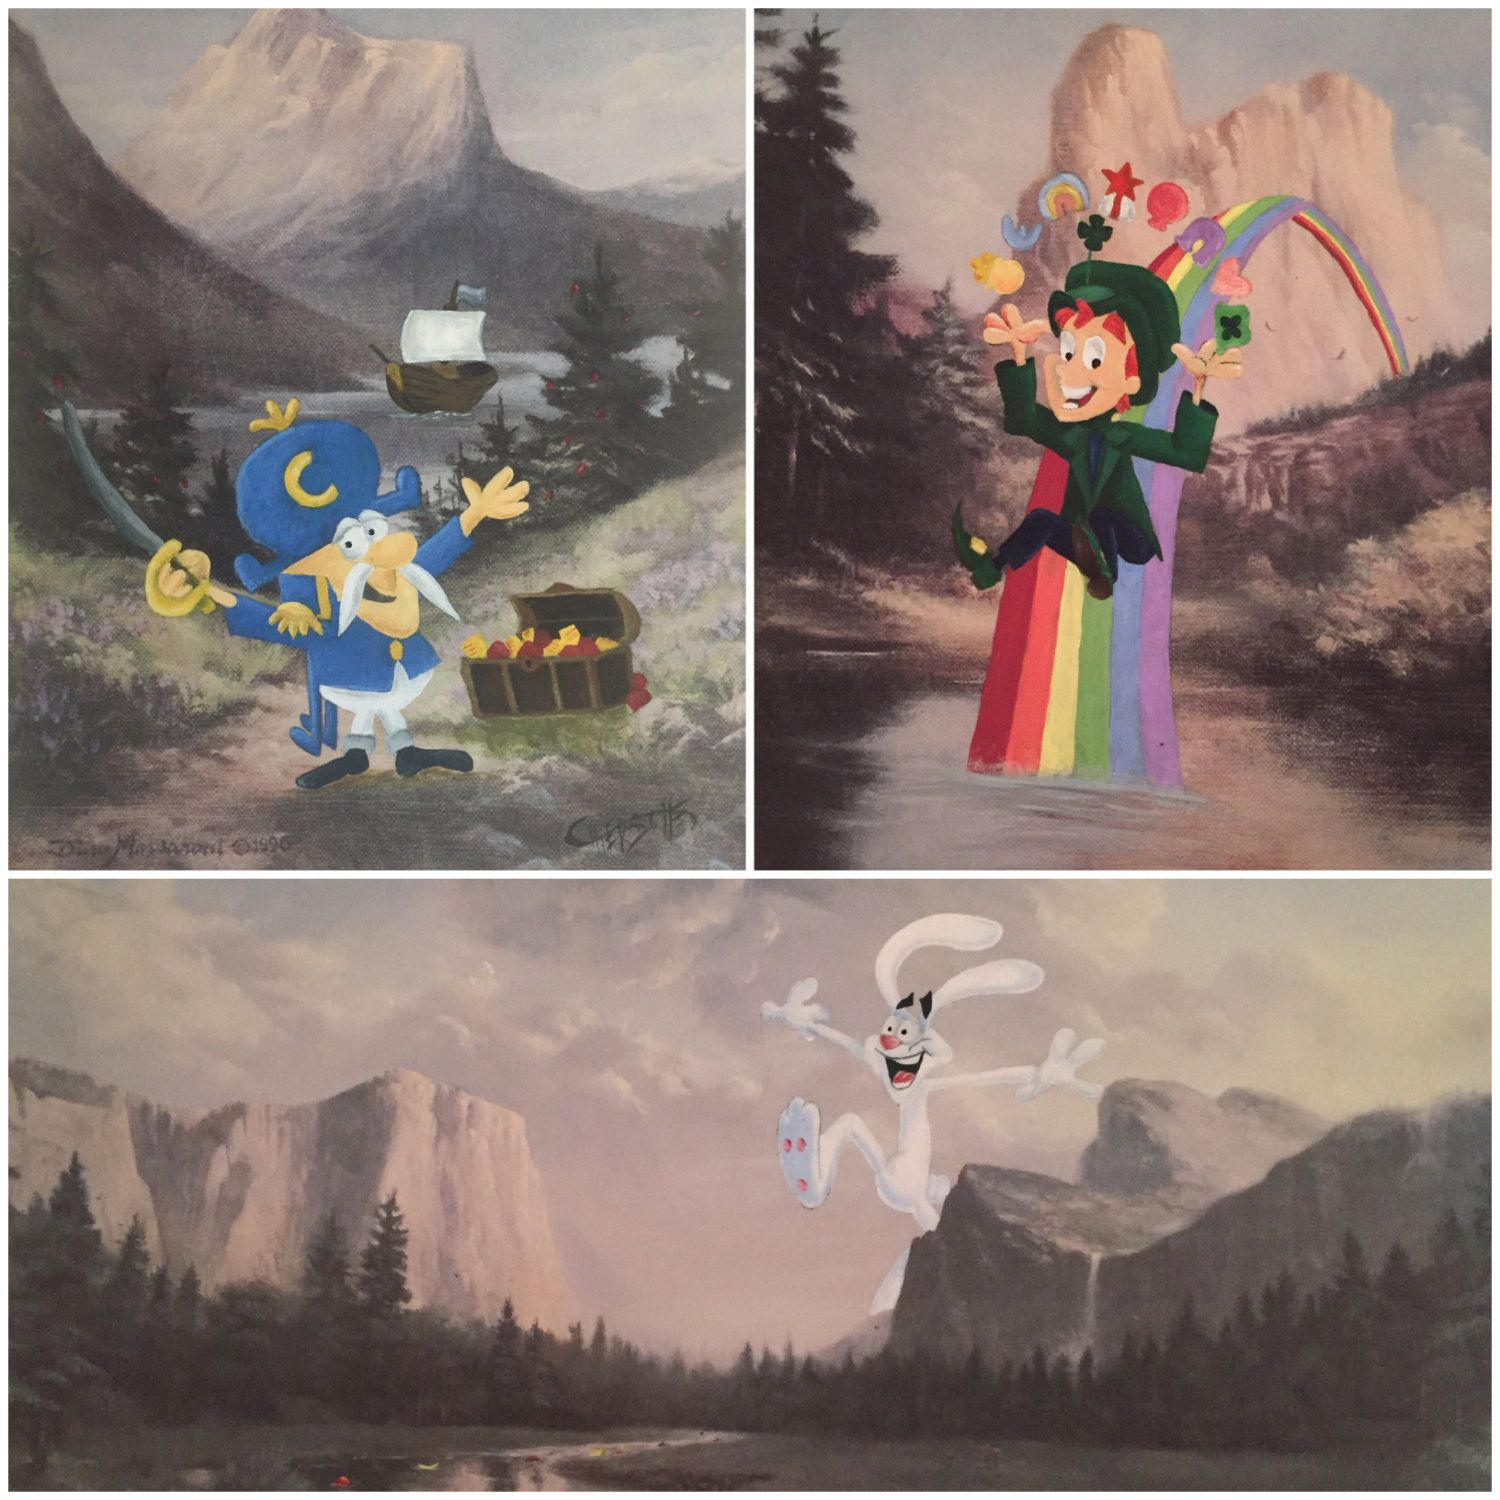 Breakfast Cereal Mascot Characters Parody Paintings